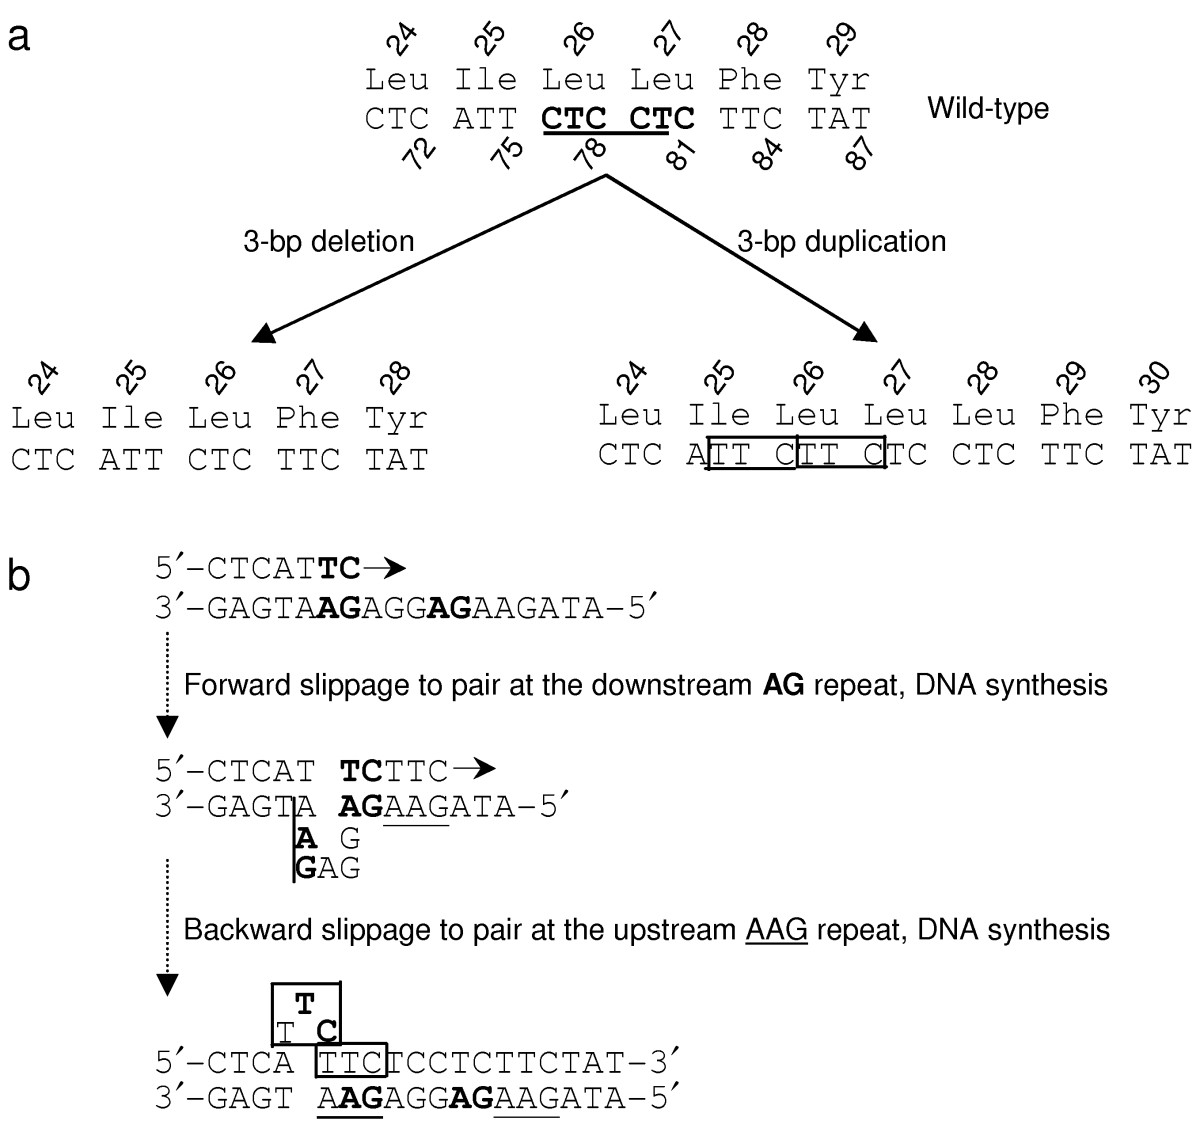 http://static-content.springer.com/image/art%3A10.1186%2F1479-7364-6-8/MediaObjects/40246_2012_Article_8_Fig1_HTML.jpg